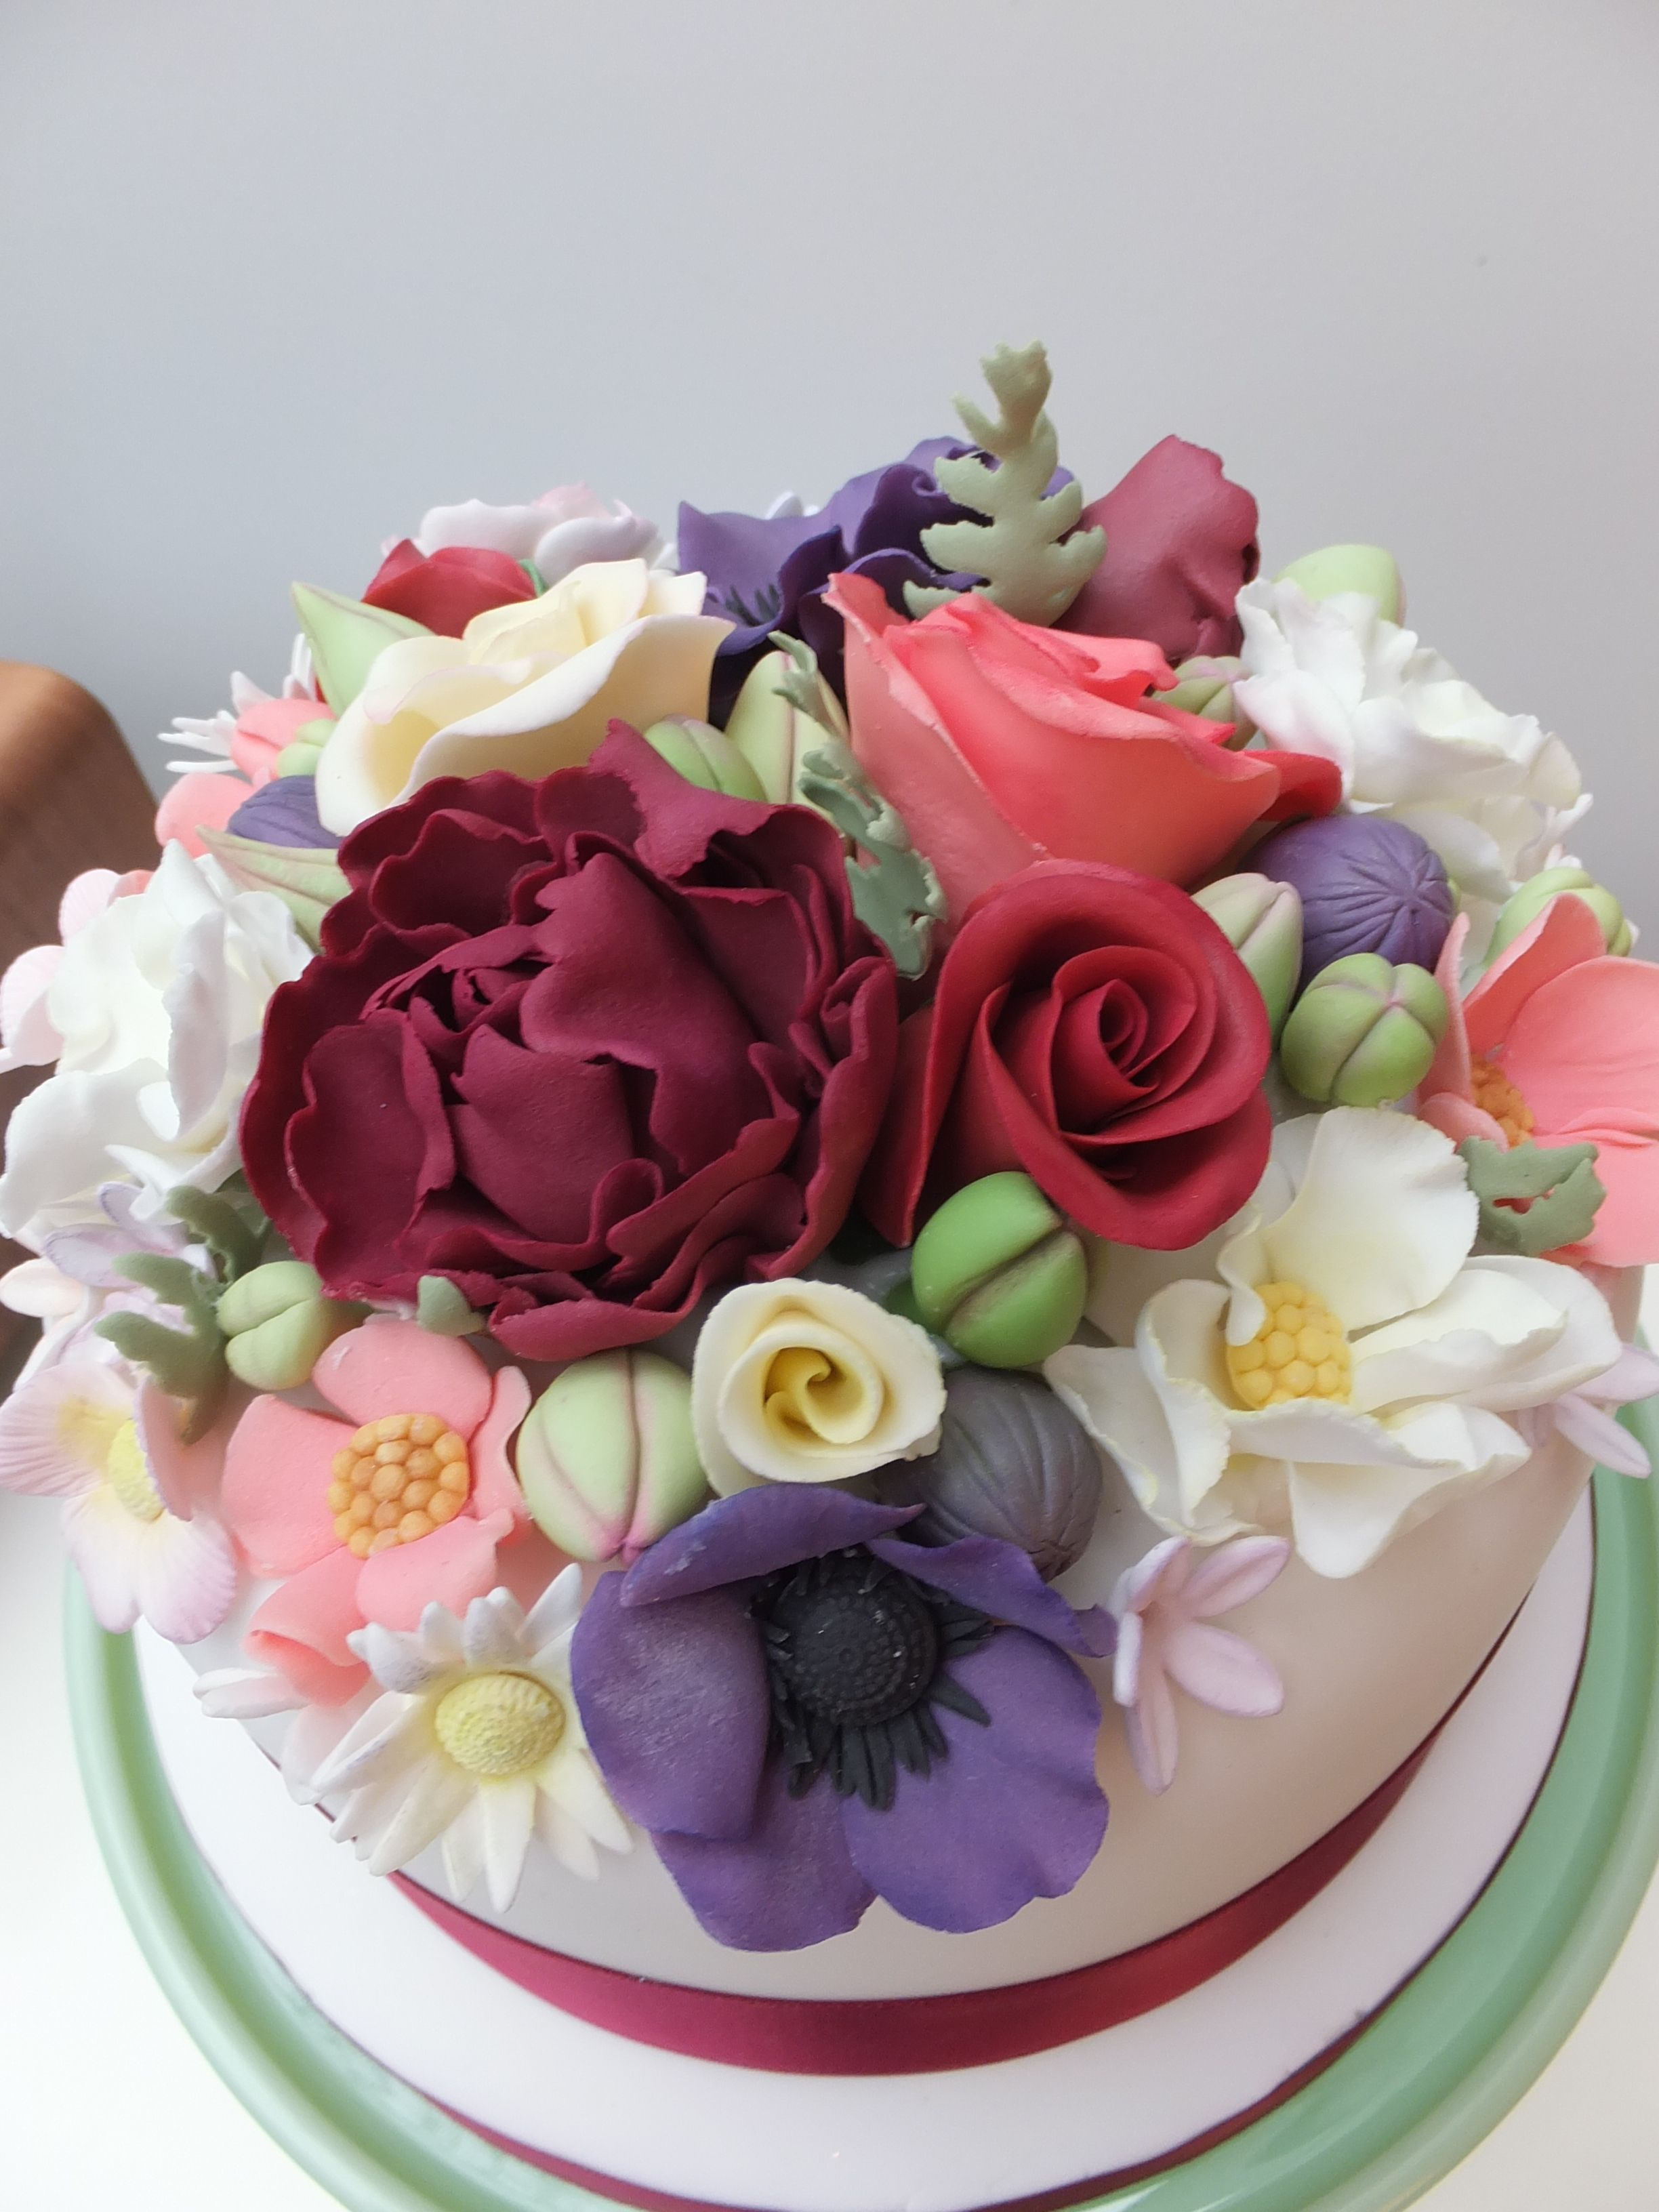 All these edible flowers are gorgeous the tulip heads look sugar flowers on myras birthday cake dhlflorist Images